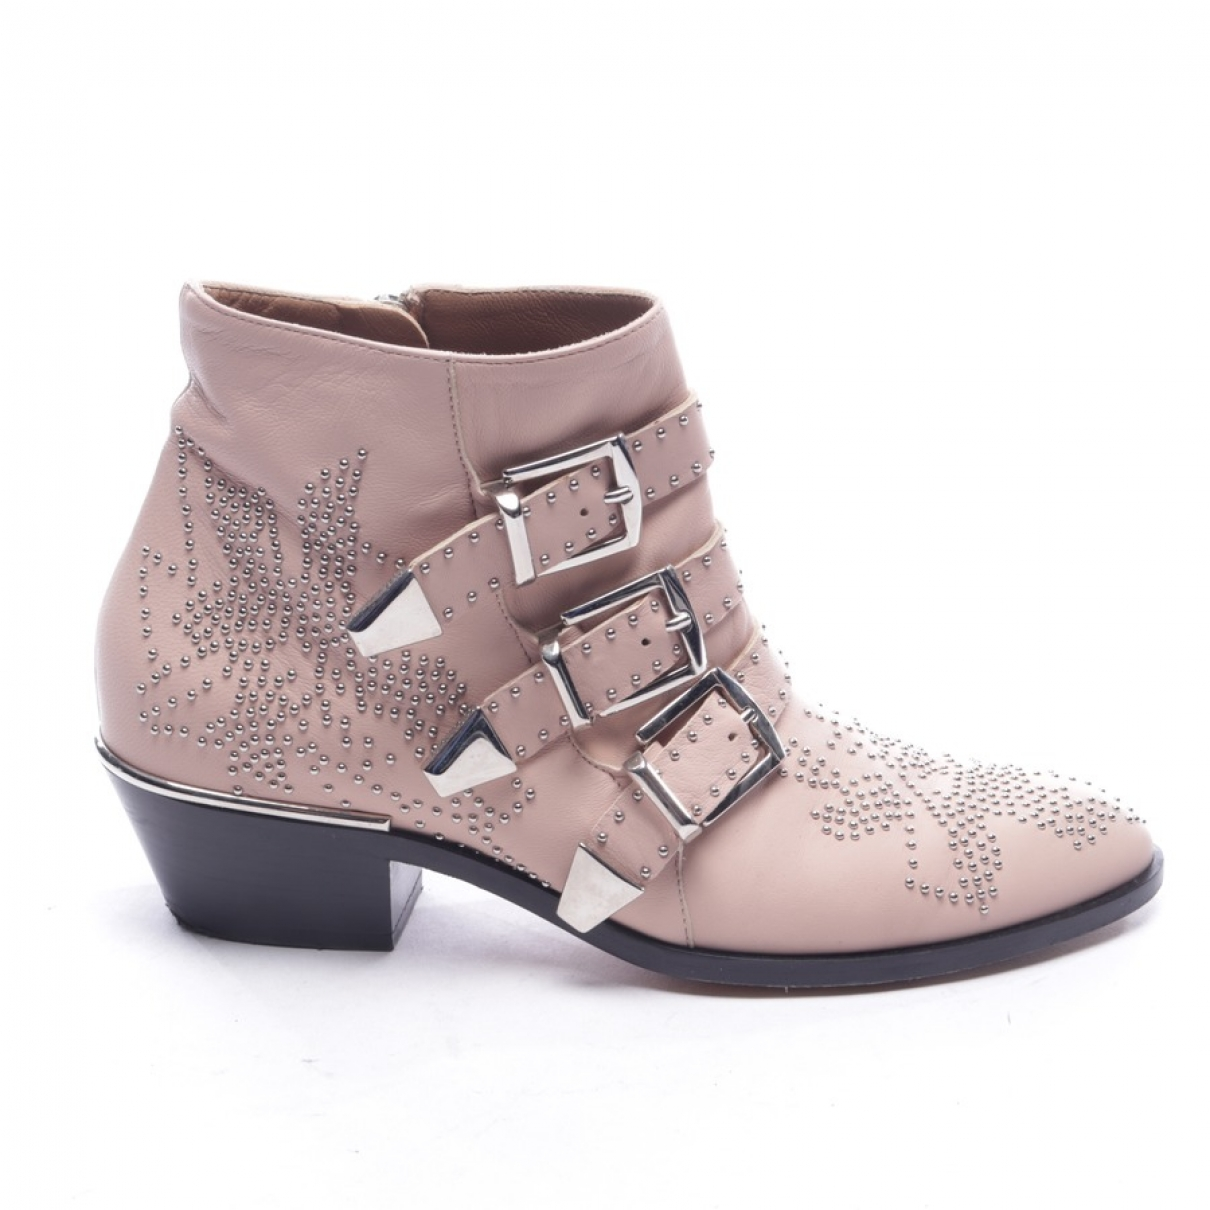 Chloé Susanna Pink Leather Ankle boots for Women 37 EU